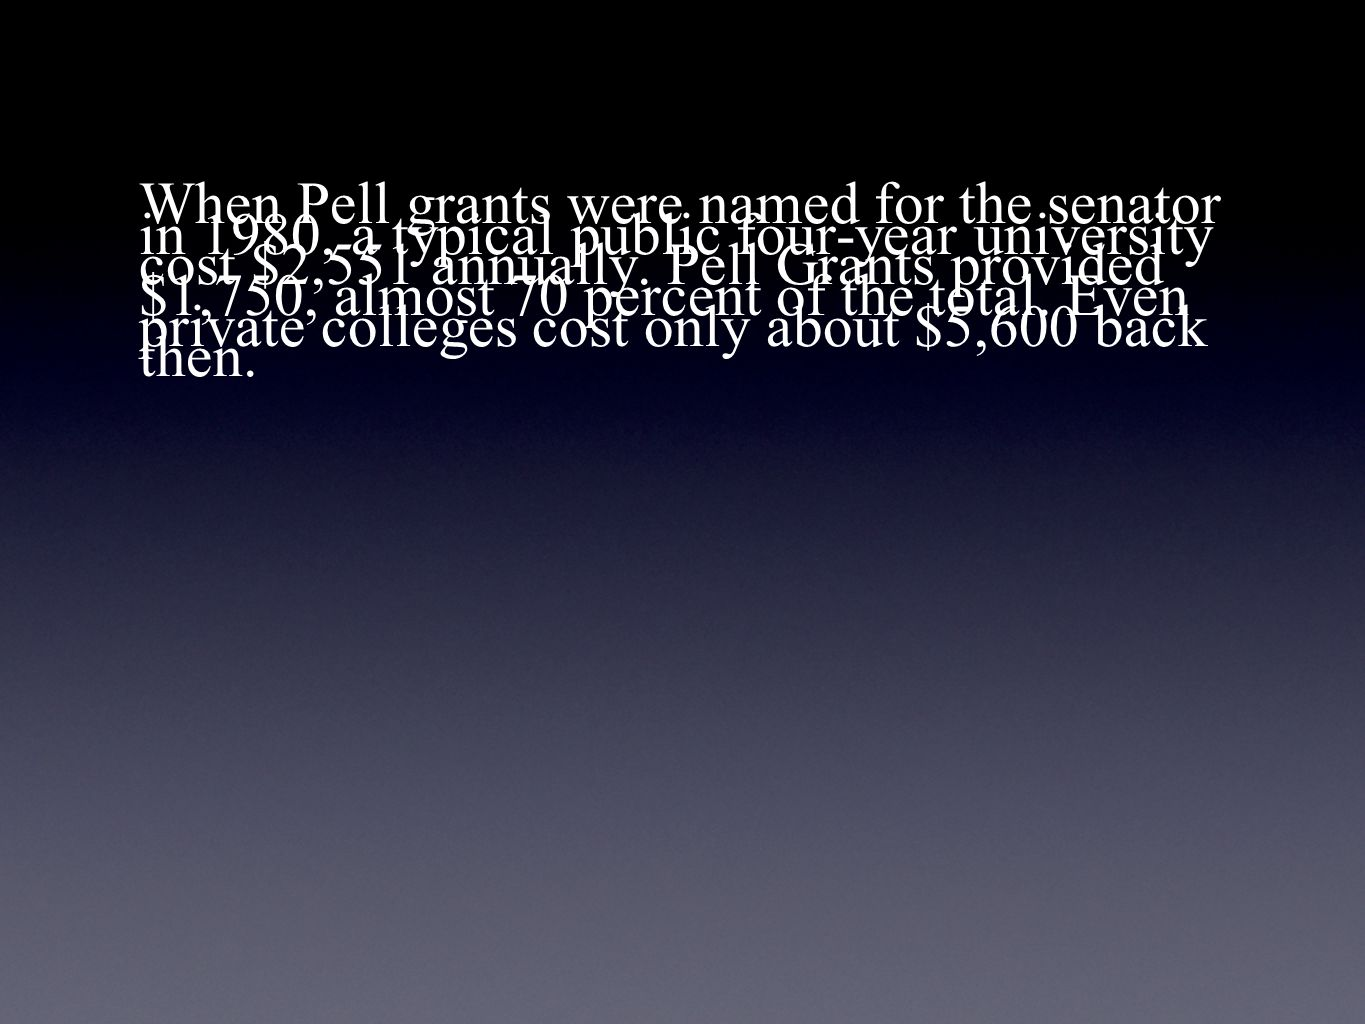 When Pell grants were named for the senator in 1980, a typical public four-year university cost $2,551 annually.